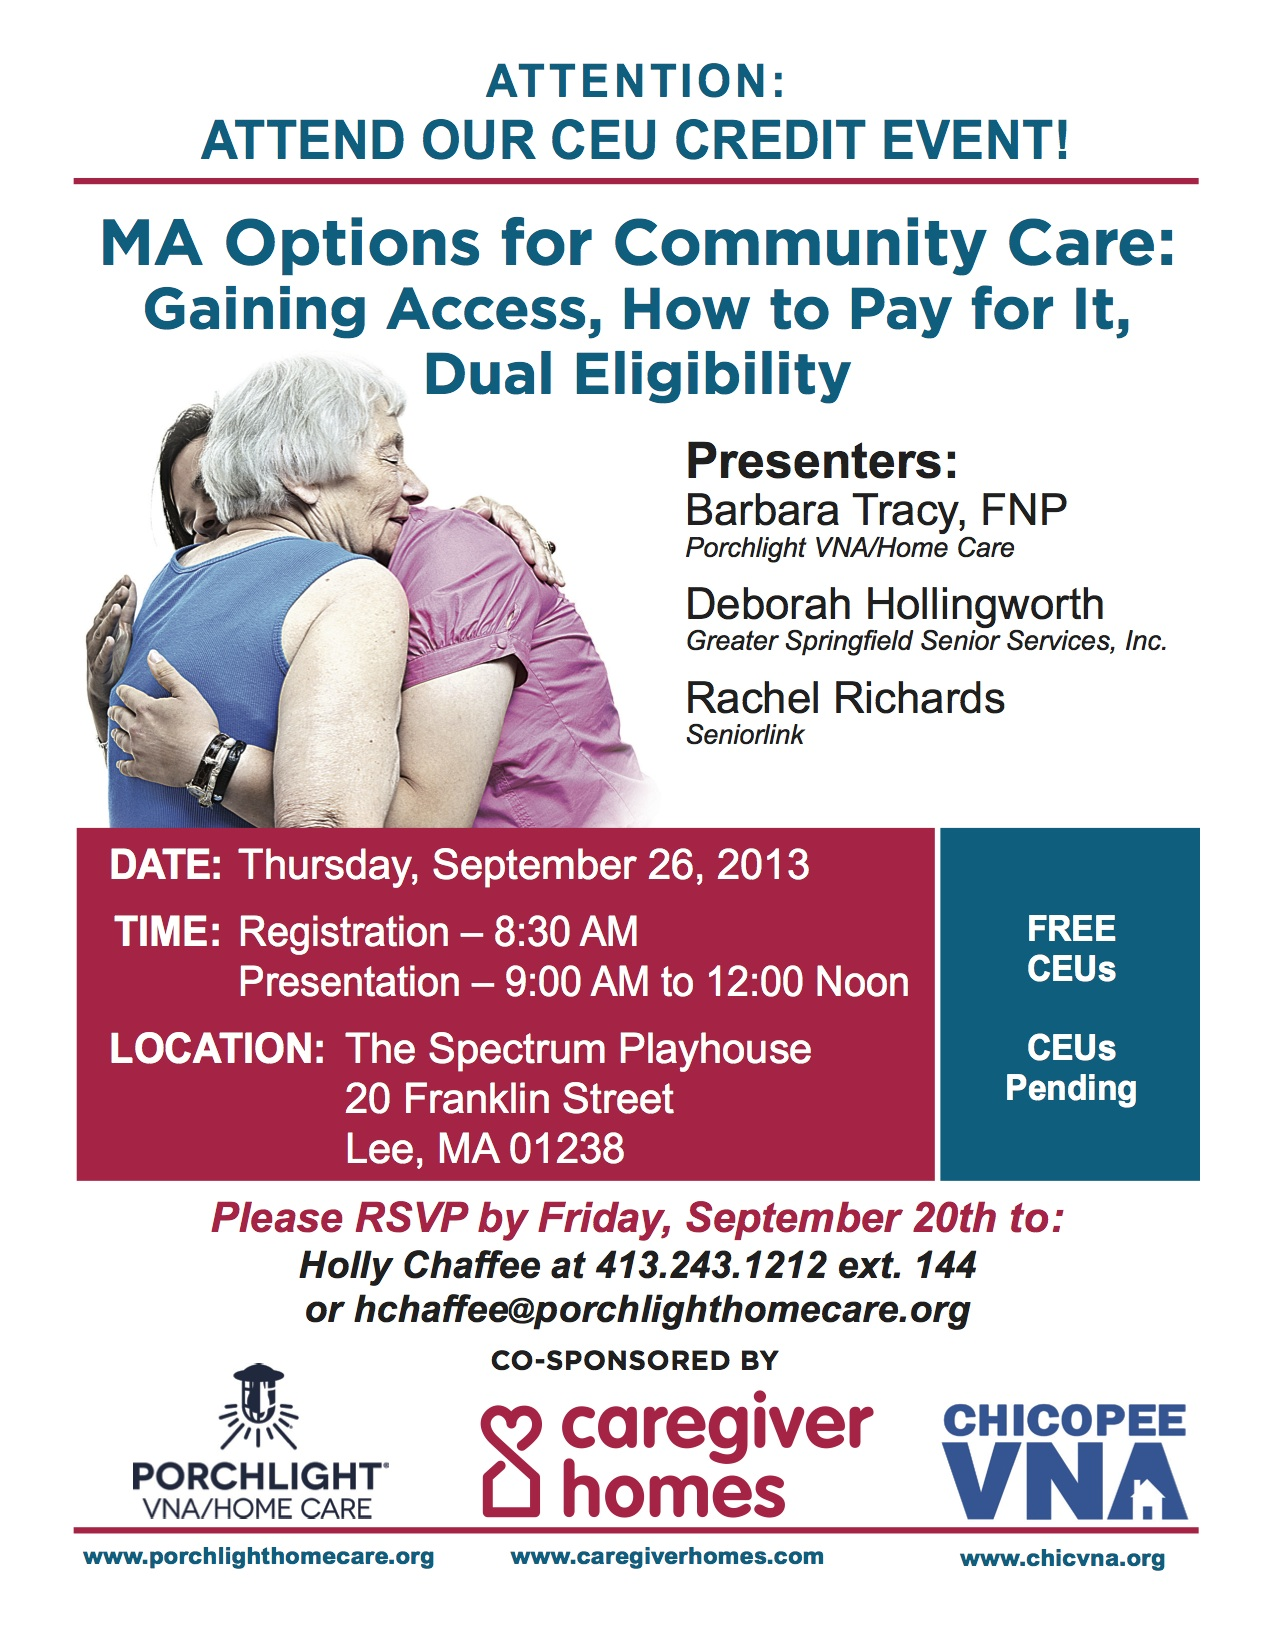 PORCHLIGHT VNA/HOME CARE FREE CEU/BREAKFAST EVENT